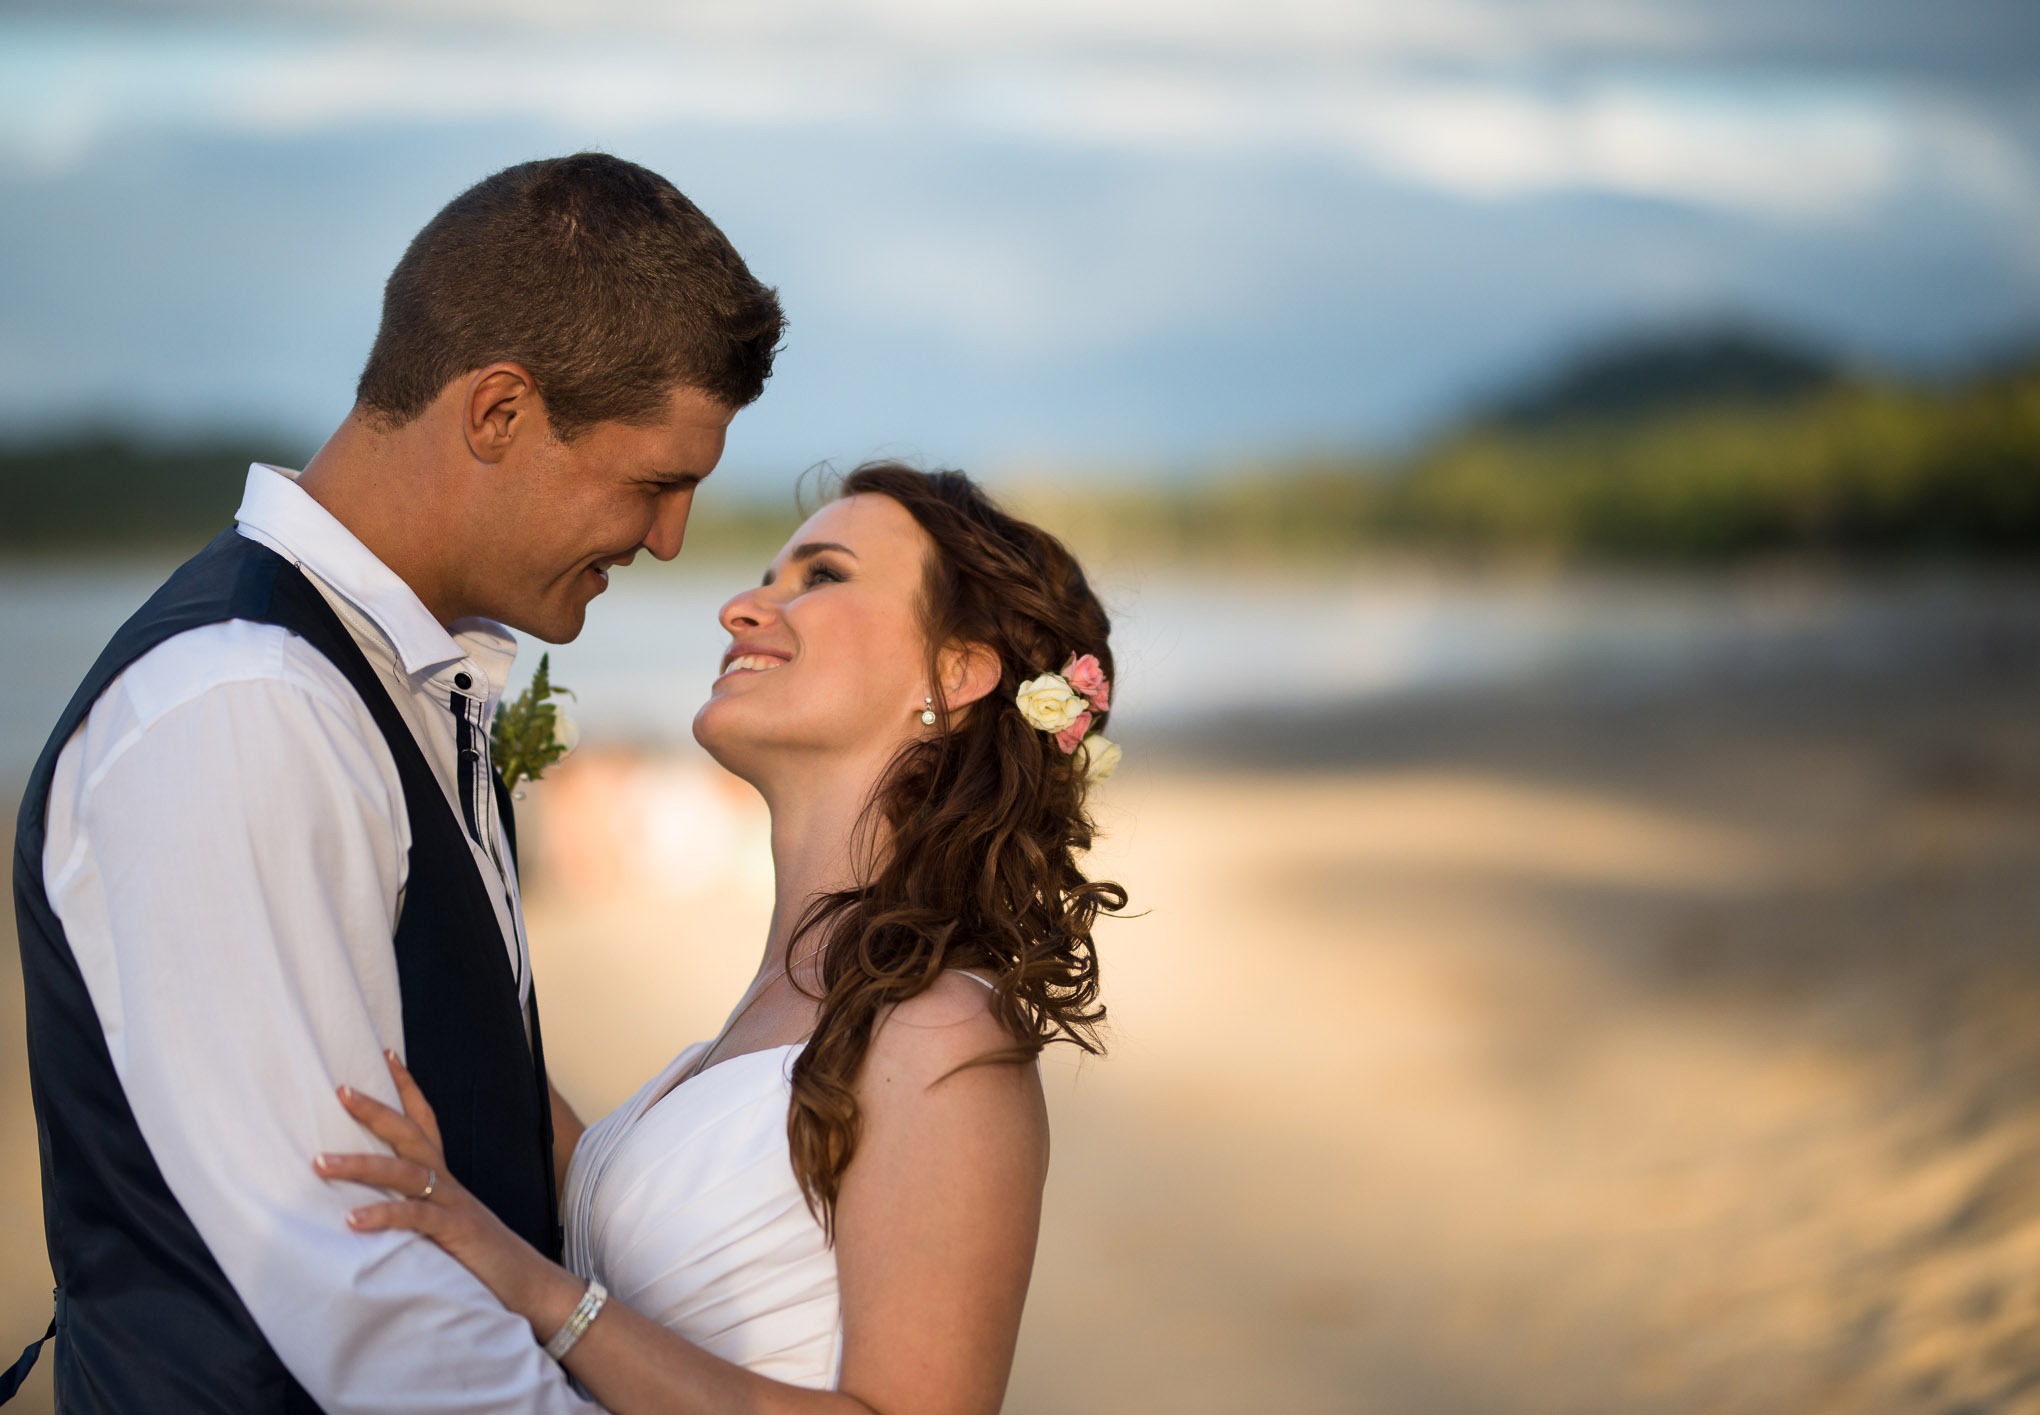 Cairns Wedding Photography GVG MEDIA Photography